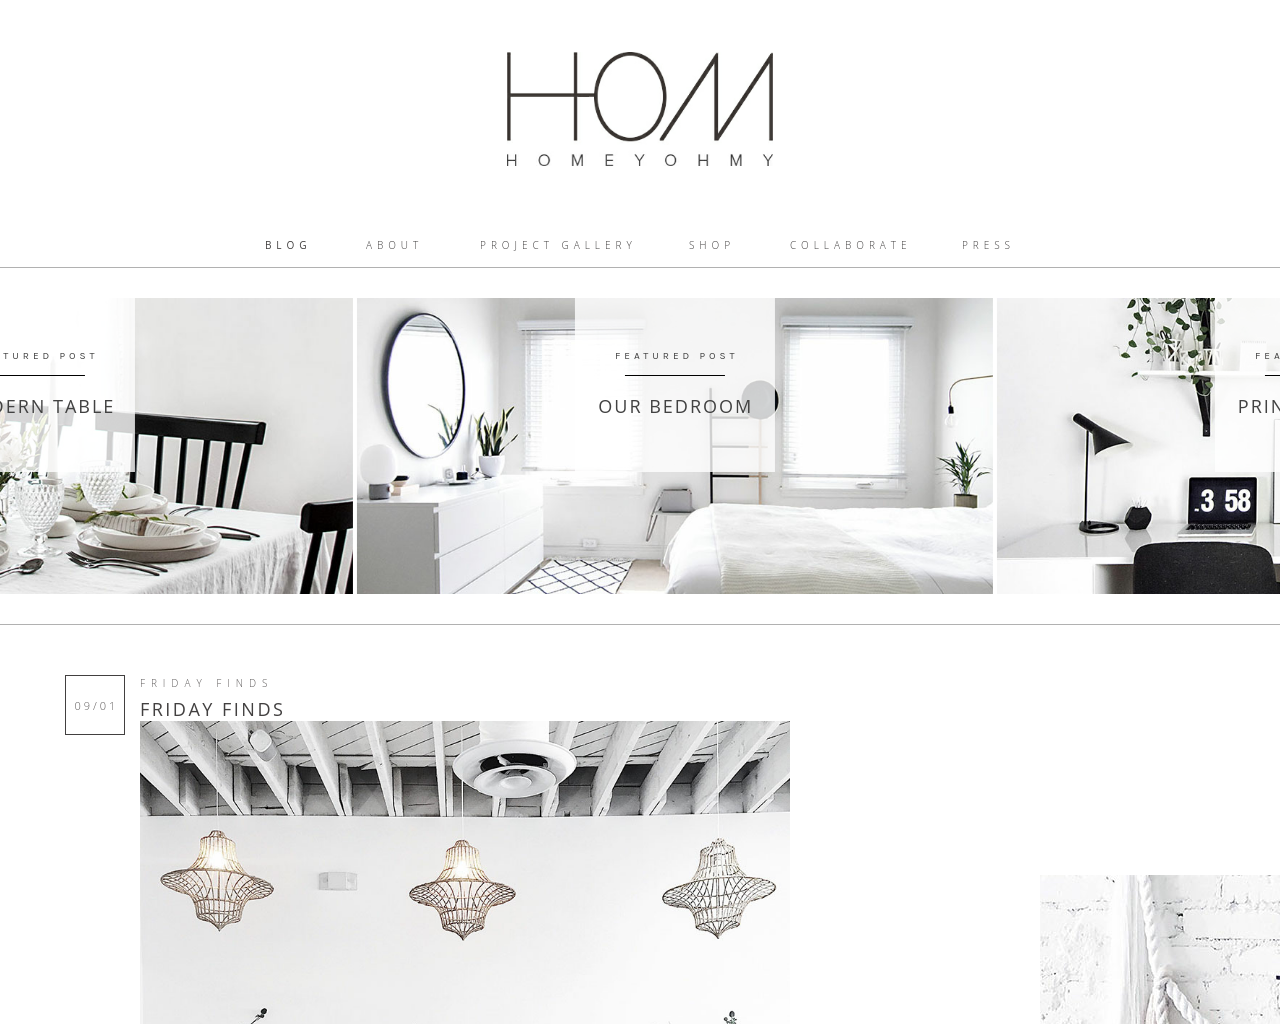 HOMEY-Oh-My!-Advertising-Reviews-Pricing